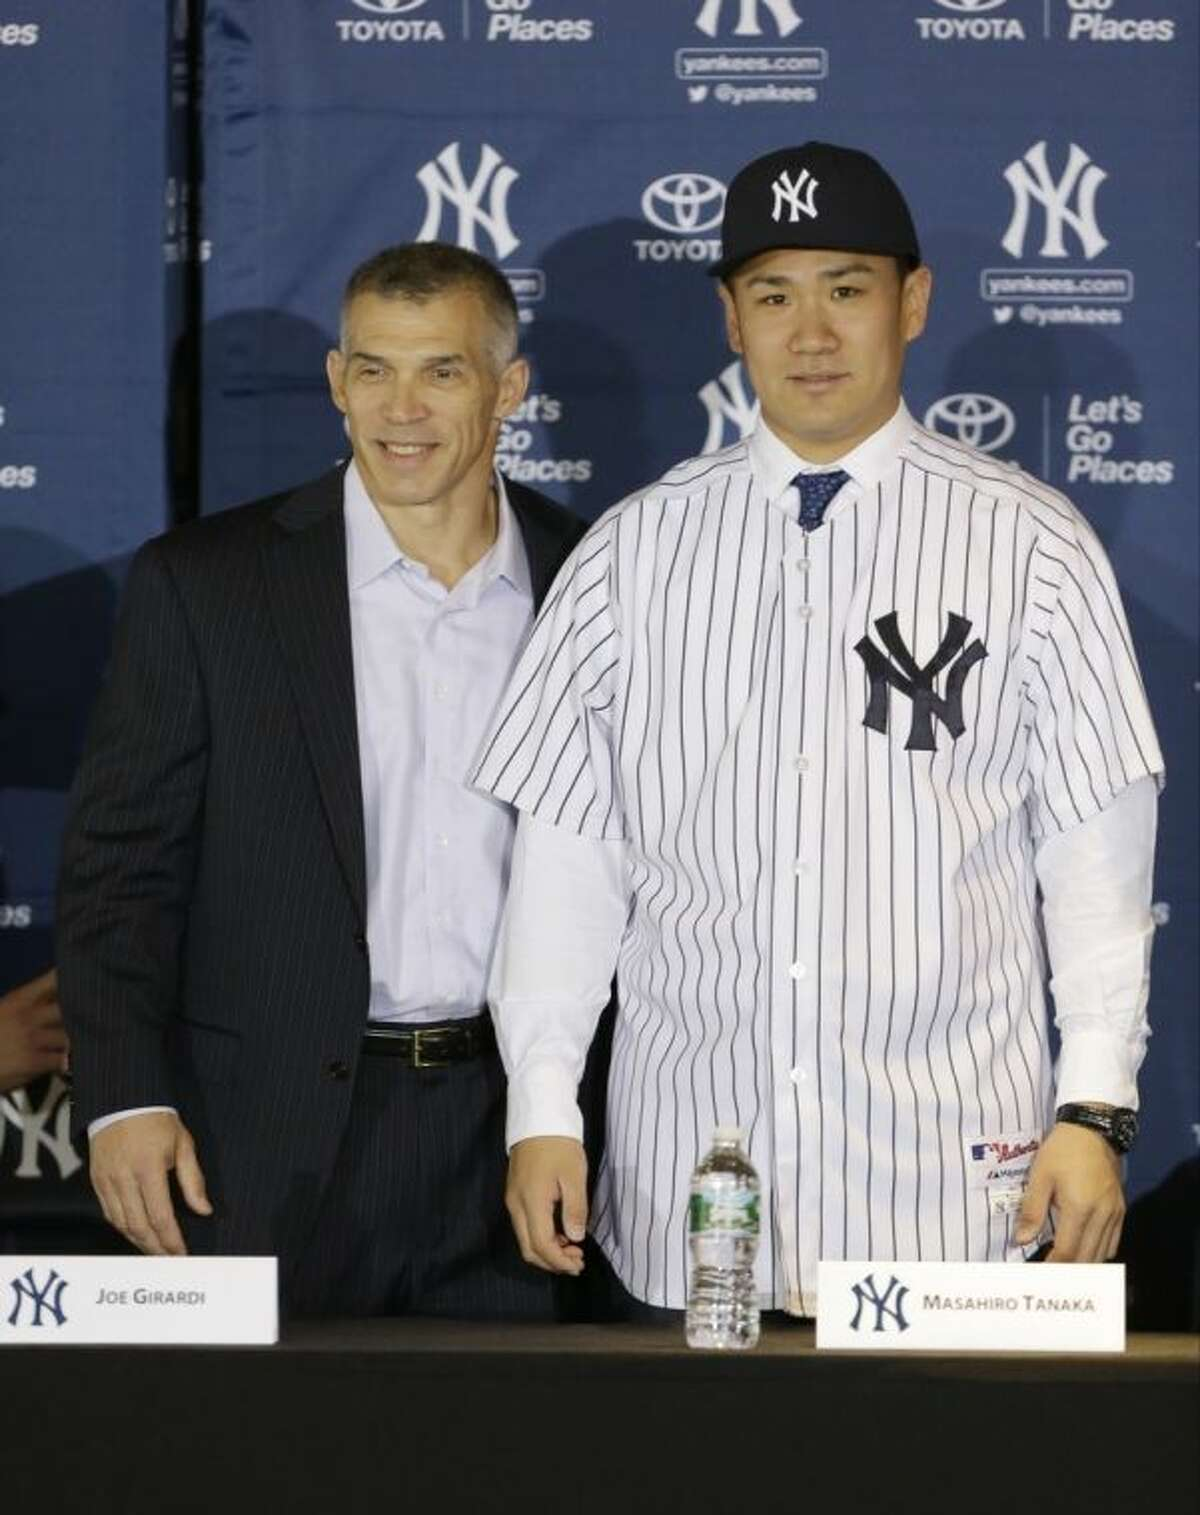 New York Yankees pitcher Masahiro Tanaka, of Japan, poses for photographs with manager Joe Girardi during a news conference at Yankee Stadium Tuesday, Feb. 11, 2014, in New York. (AP Photo/Frank Franklin II)